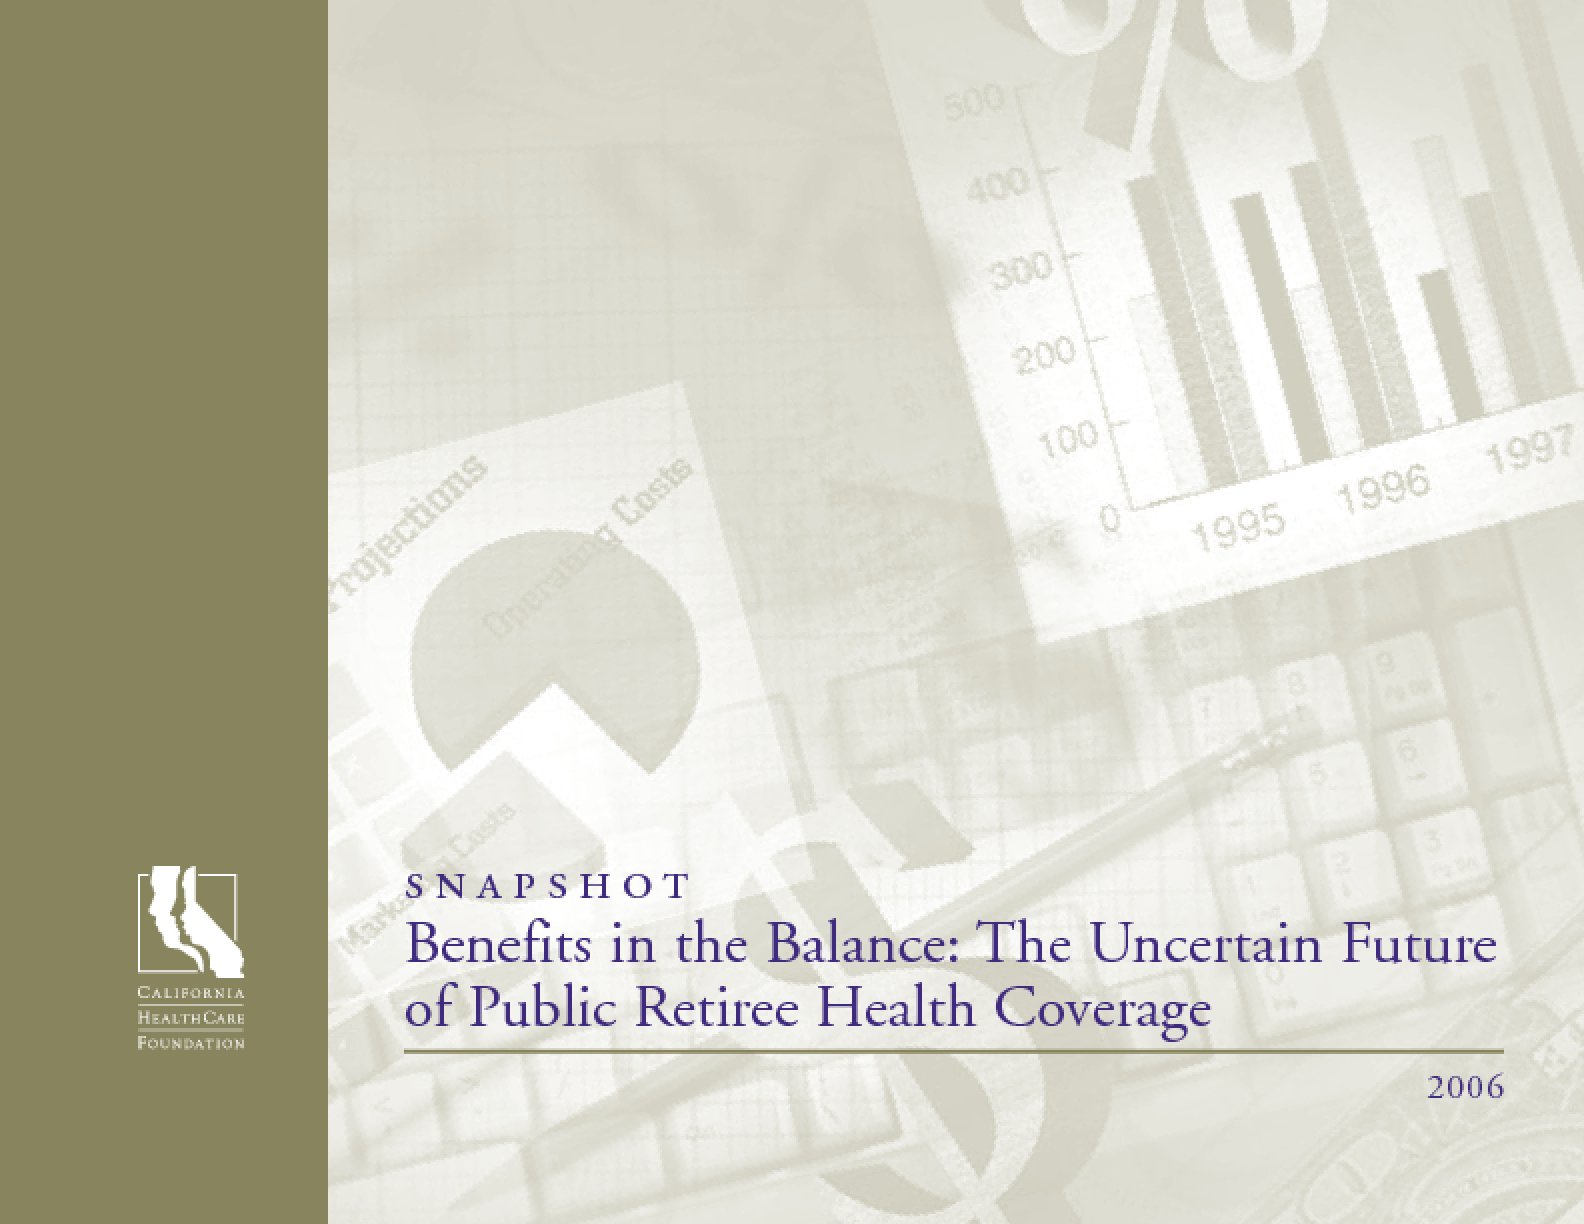 Benefits in the Balance: The Uncertain Future of Public Health Retiree Coverage